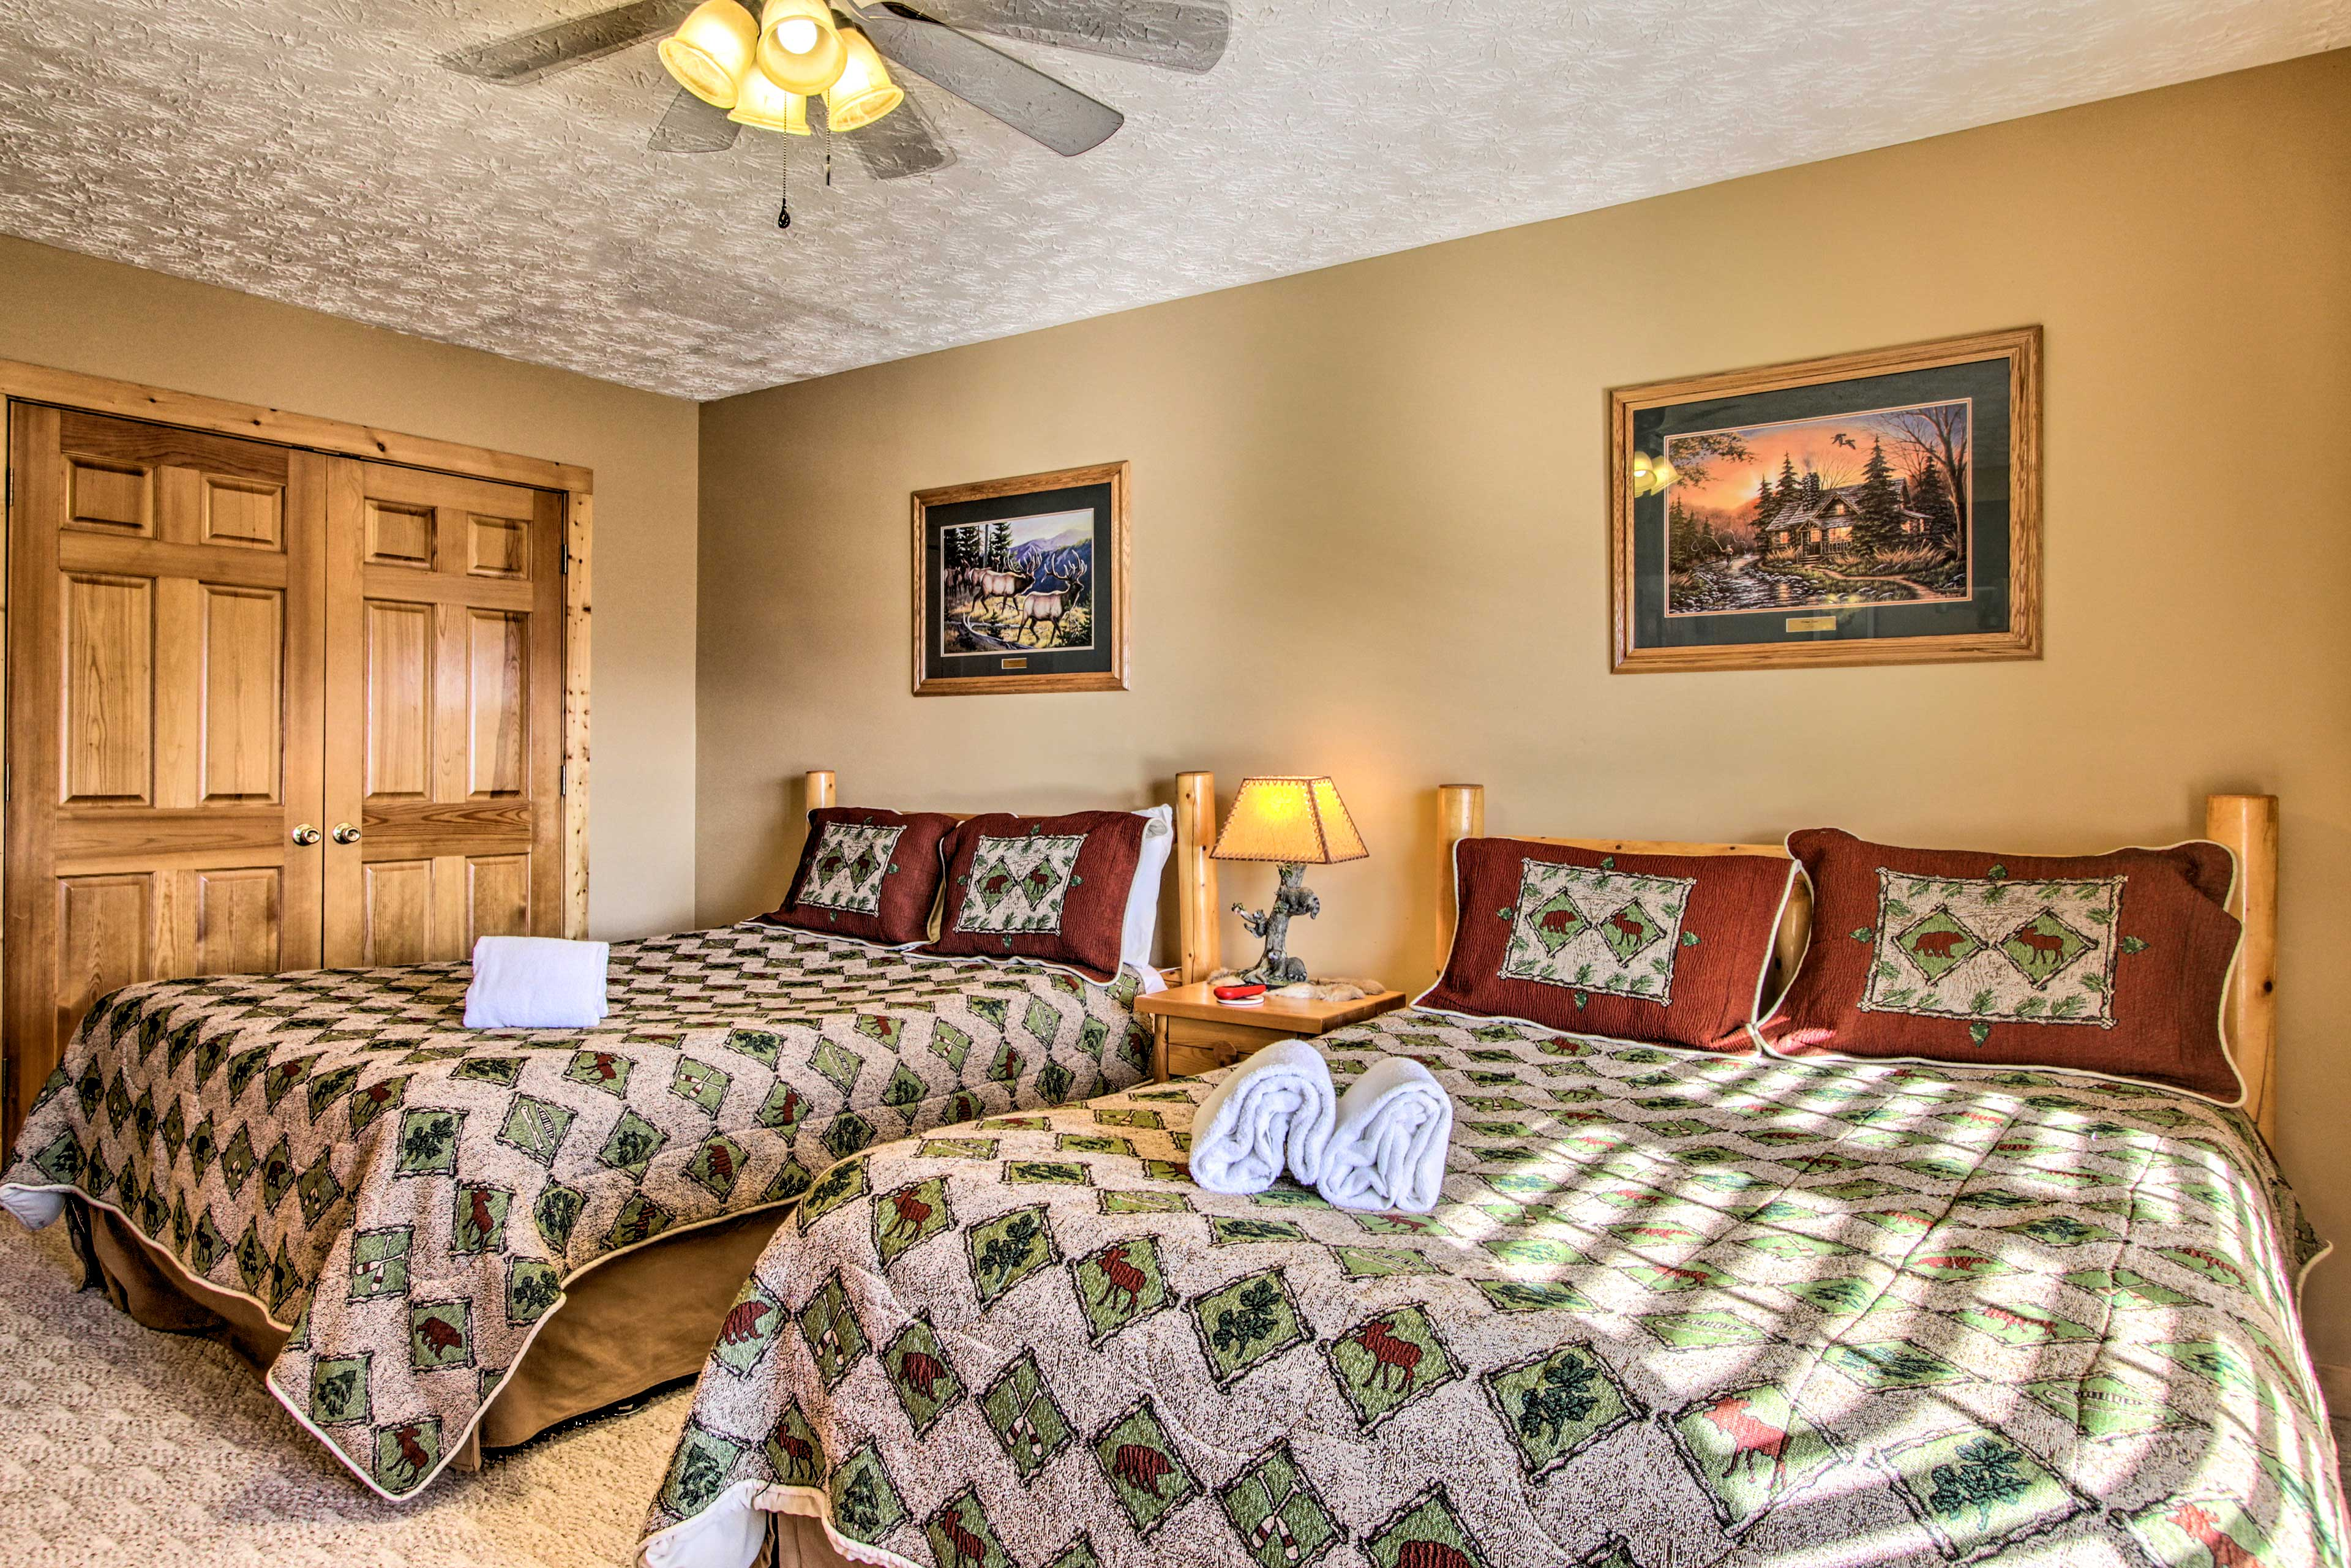 Make yourself at home in this downstairs bedroom with 2 queen beds.